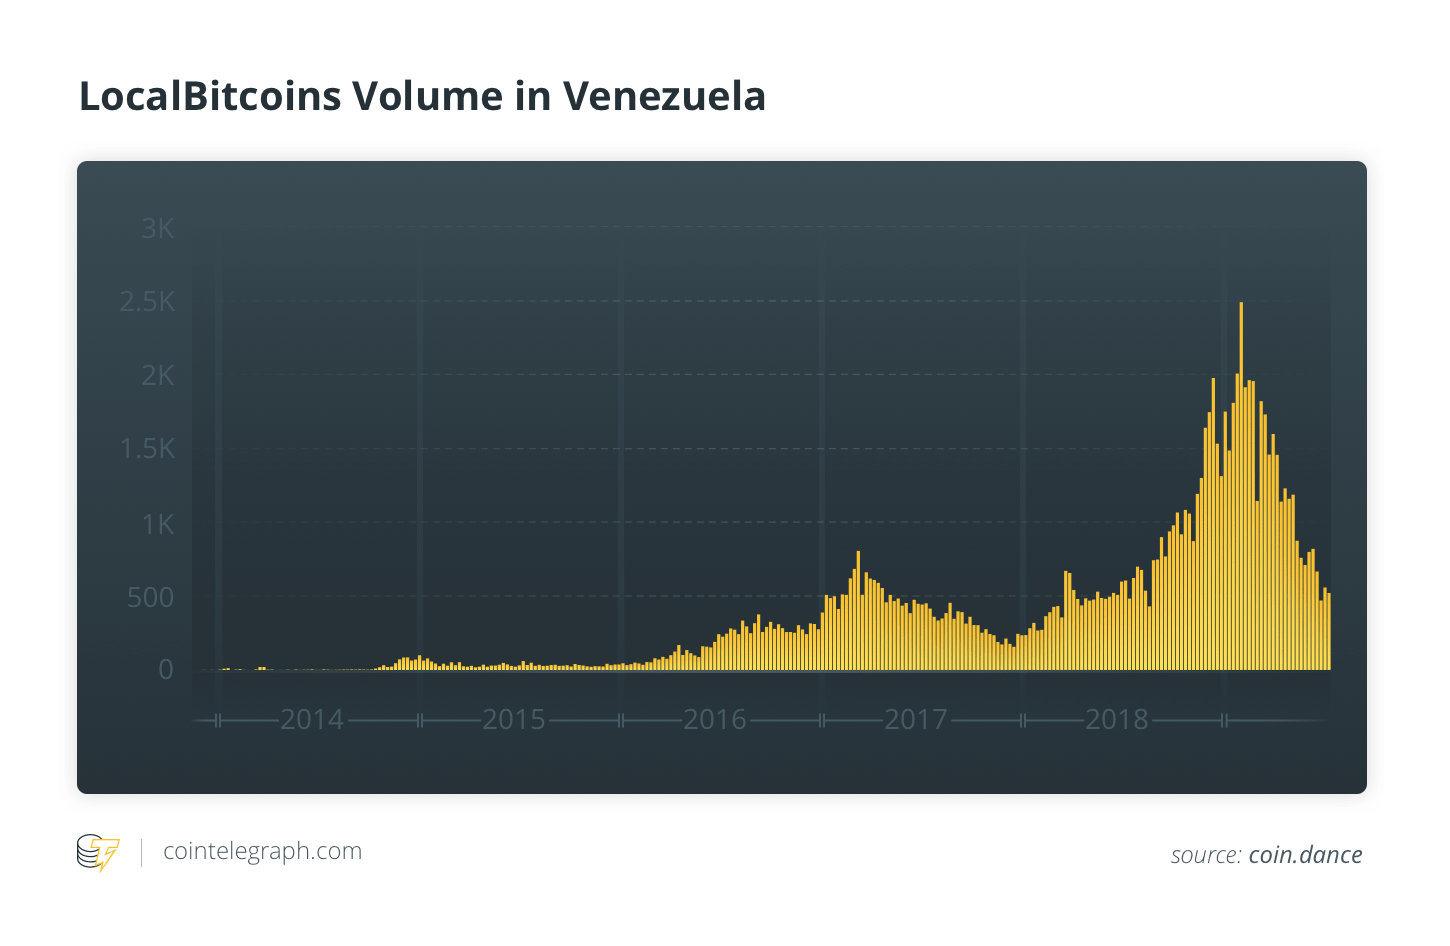 LocalBitcoins Volume in Venezuela